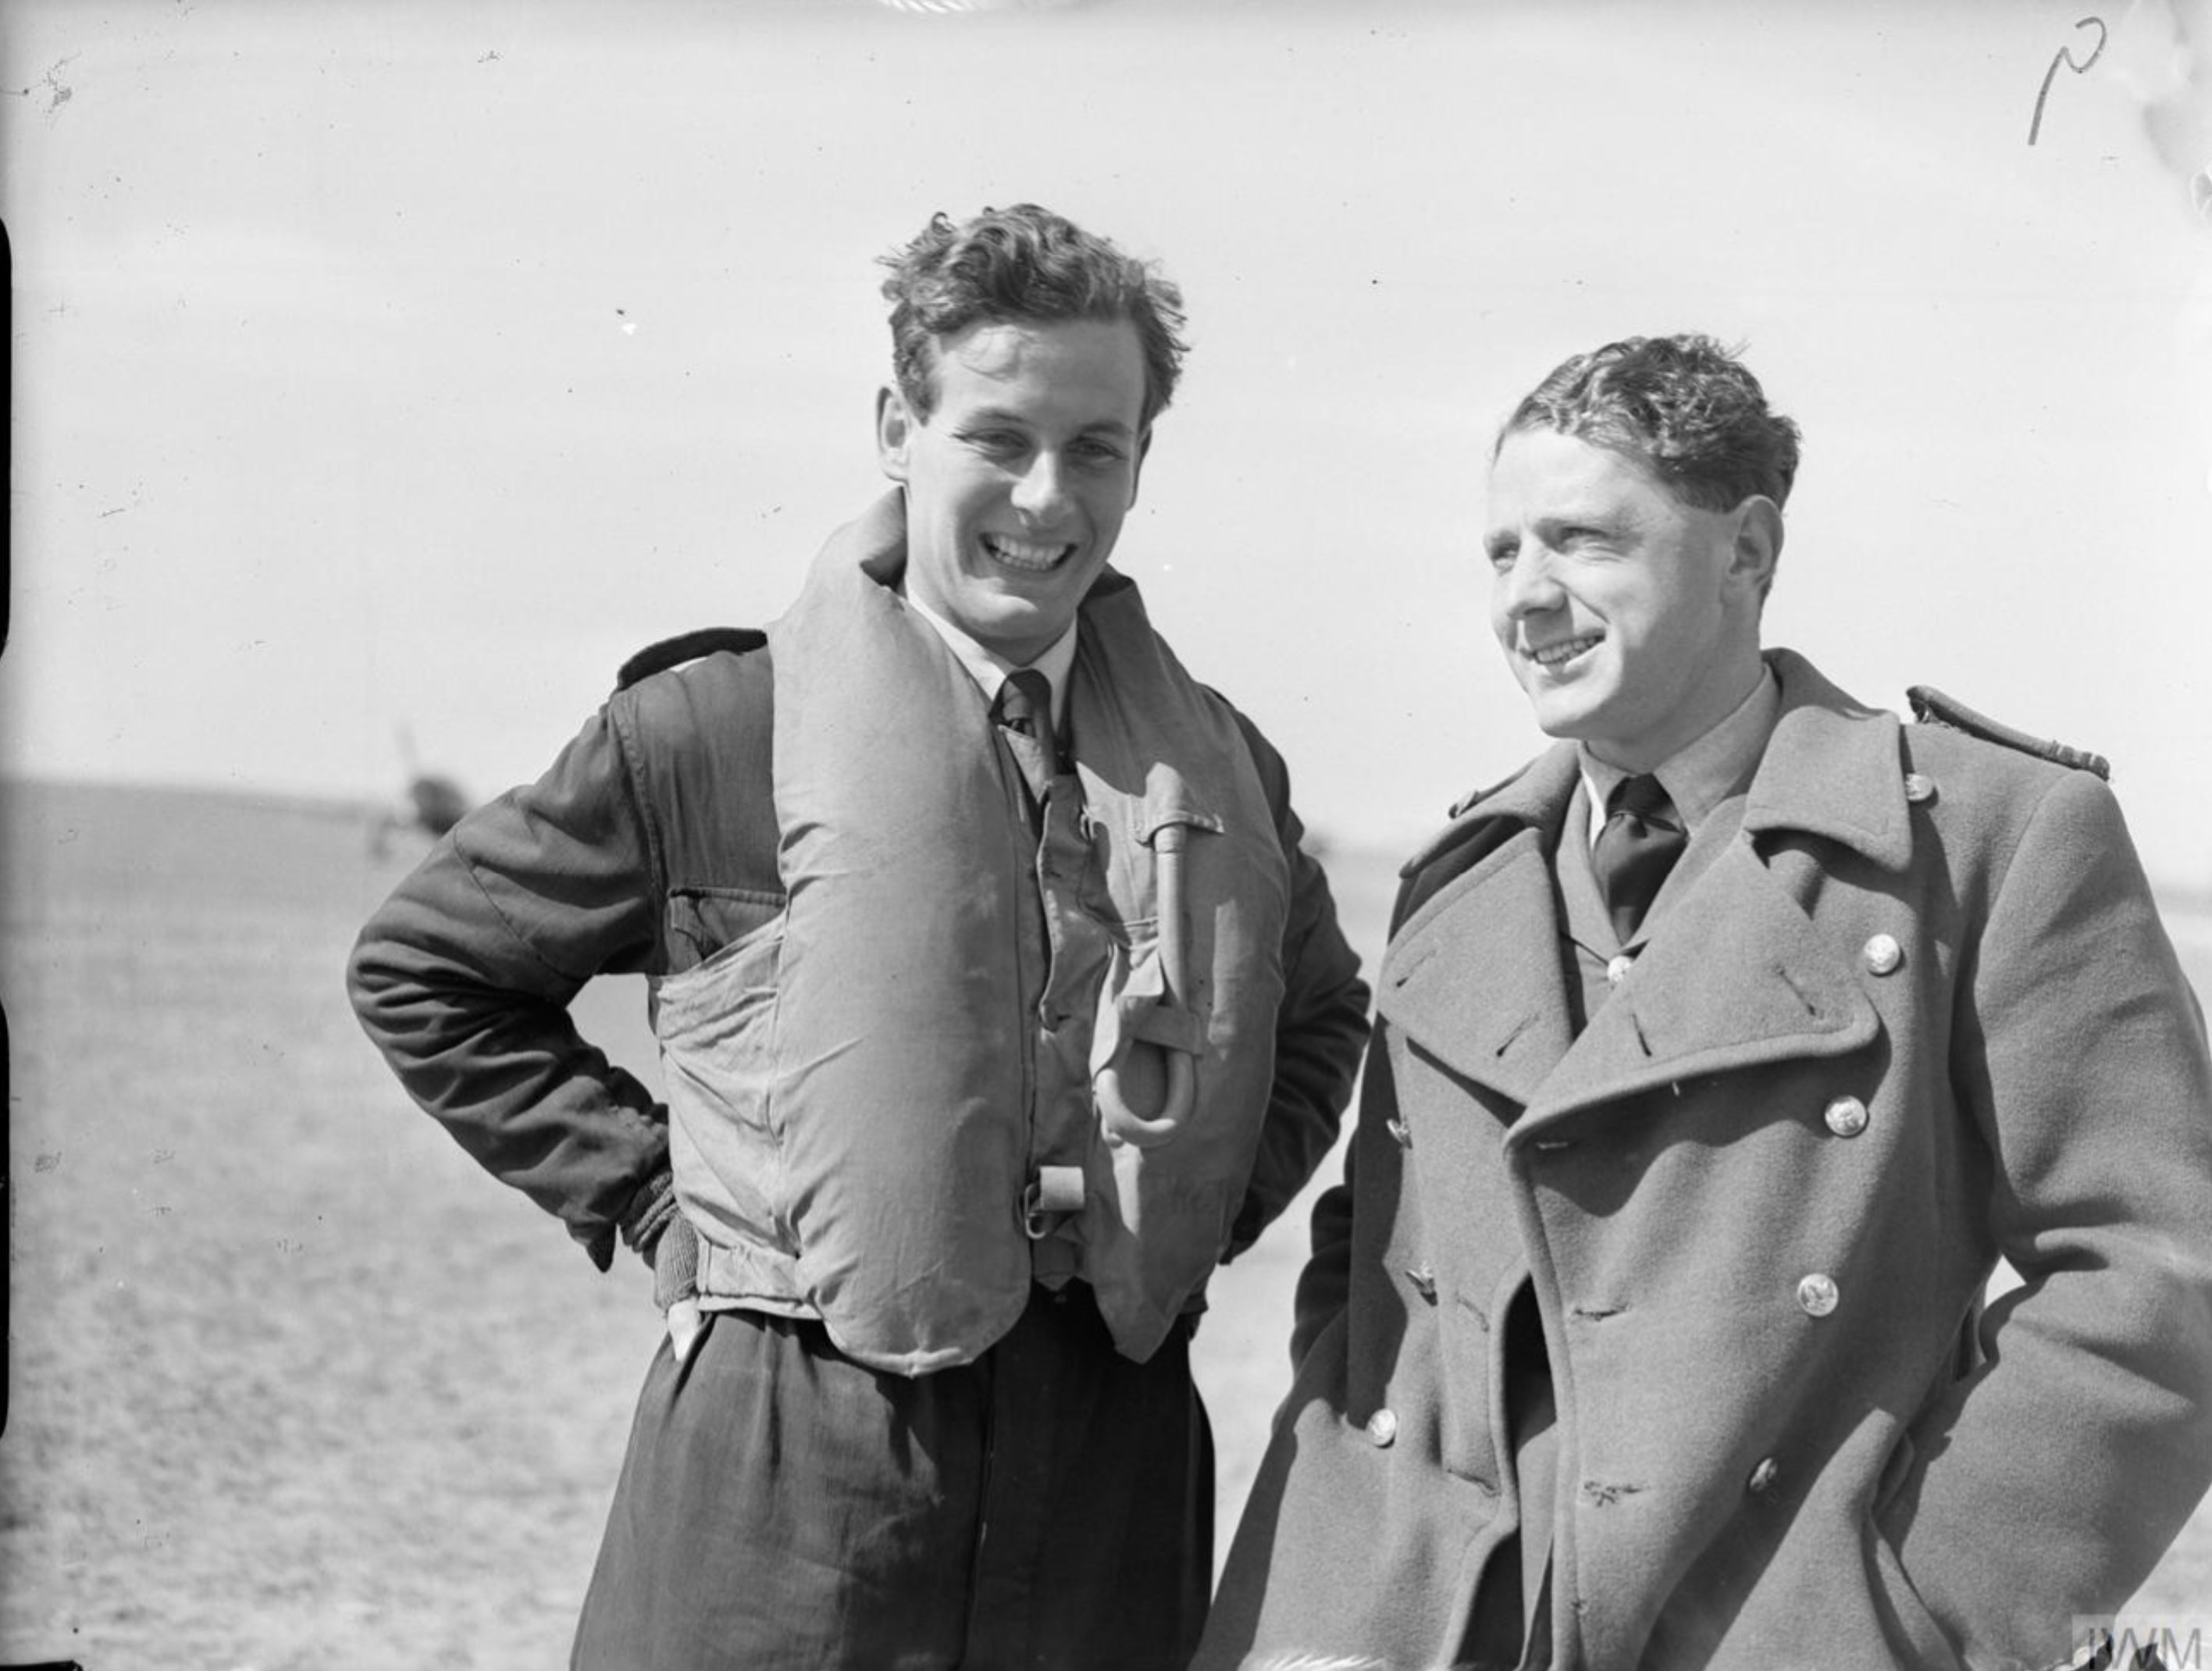 Aircrew RAF 242Sqn pilot PW Townsend and CB Hull at Wick Caithness 1940 IWM CH89